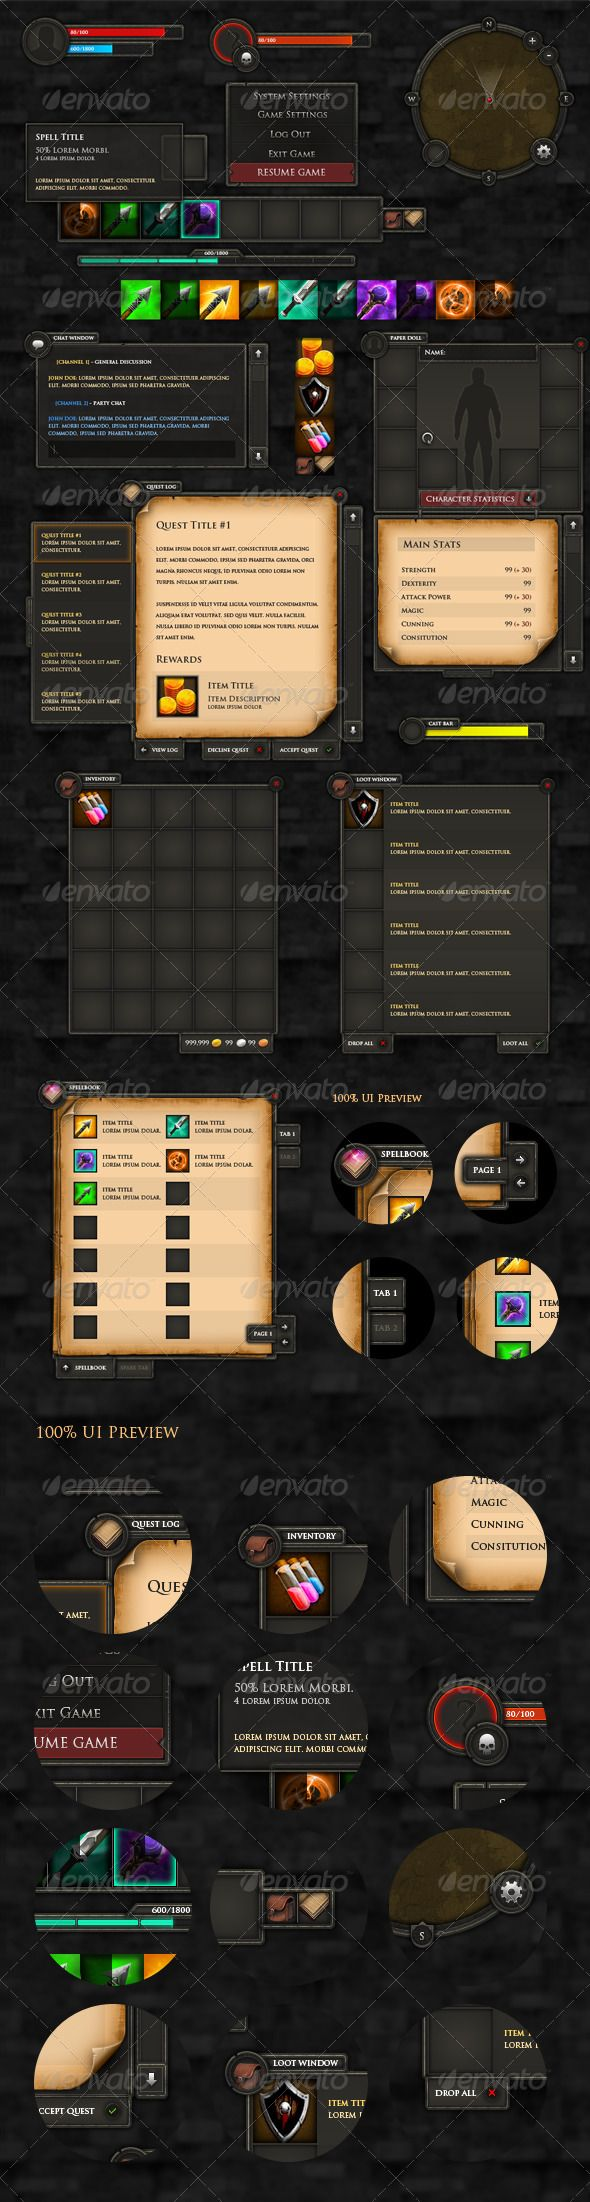 RPG User Interface - GraphicRiver Item for Sale UI